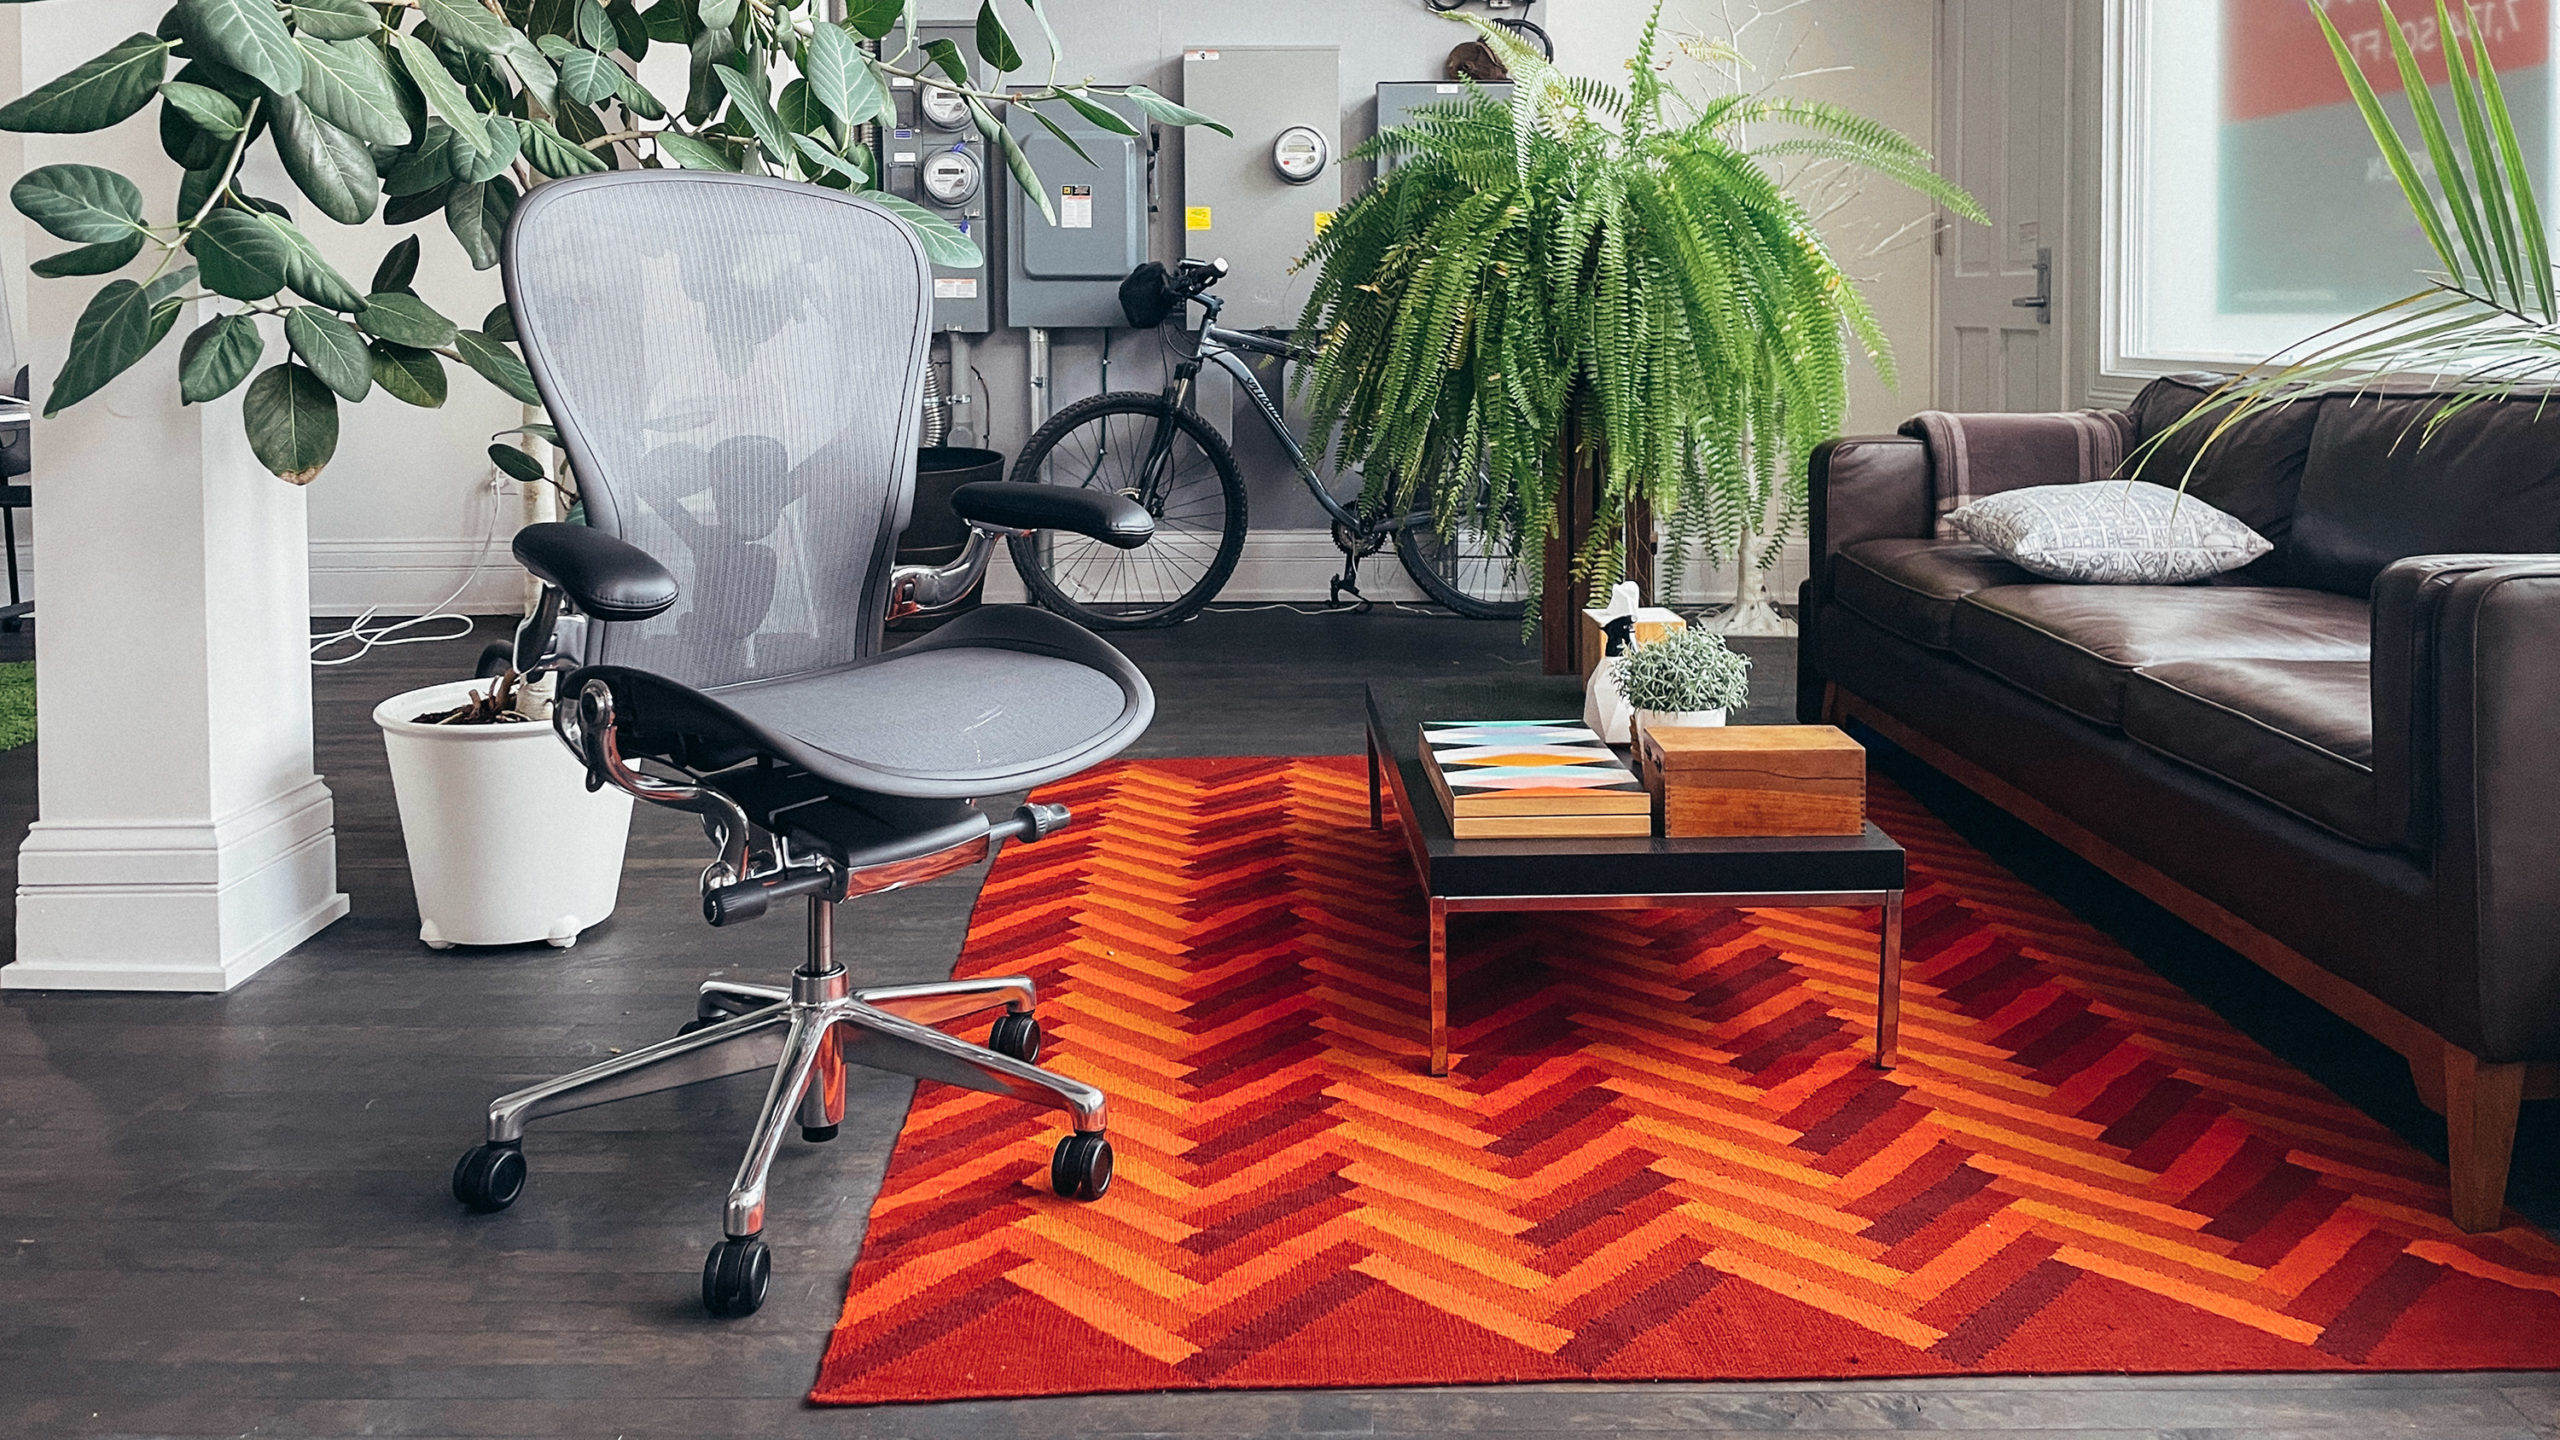 Aeron chair with patterned rug